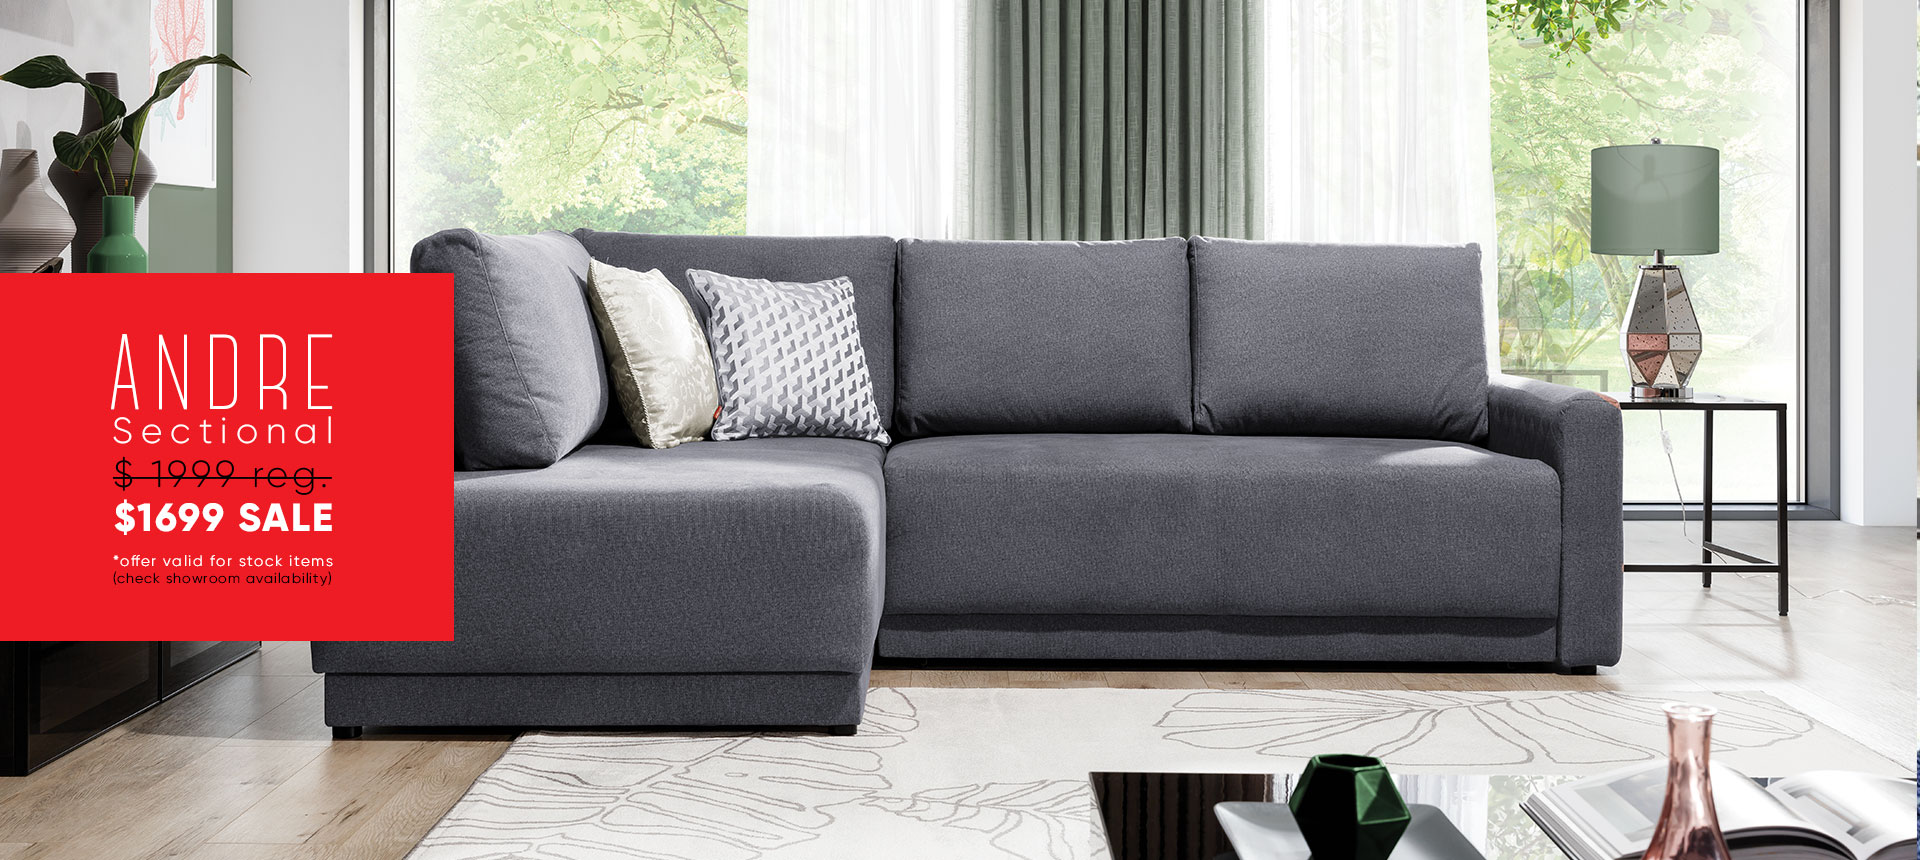 Andre sectional - $1699 sale - Online store Smart Furniture Mississauga